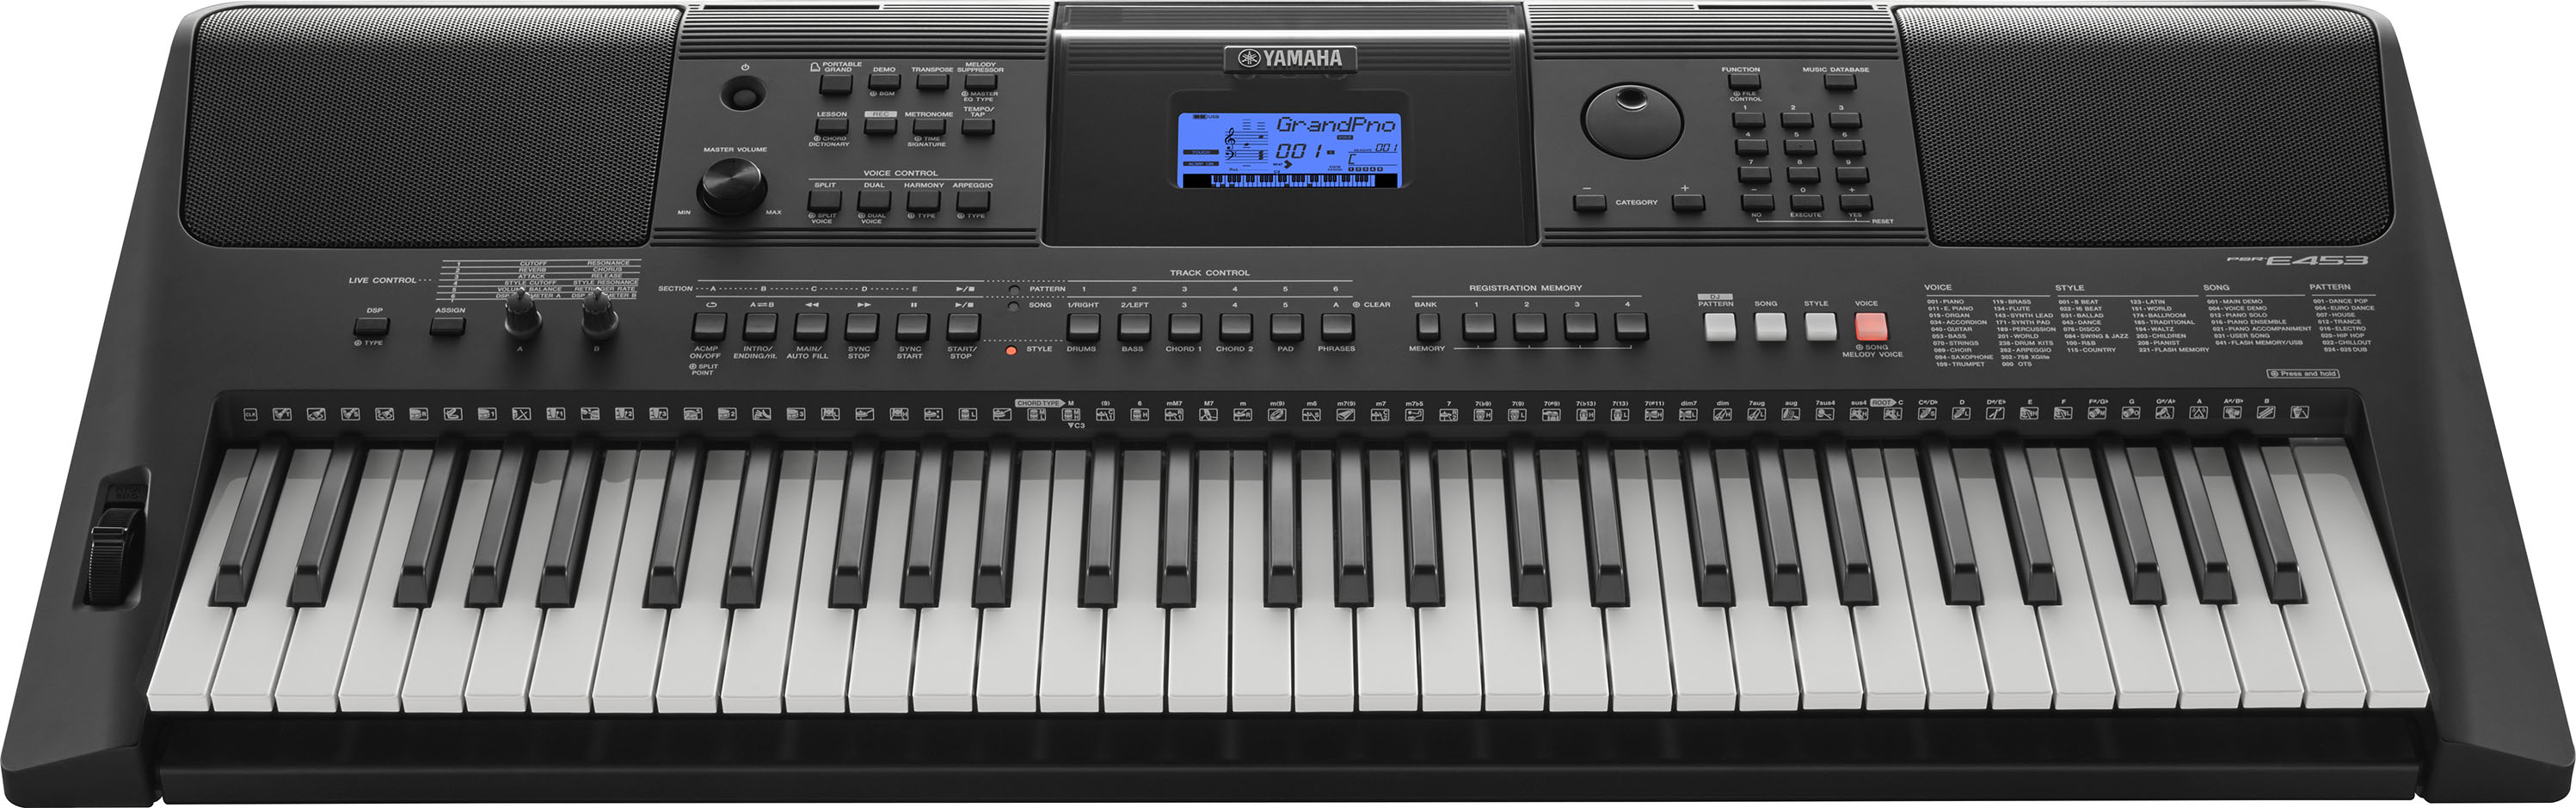 yamaha psr e453 and psr ew400 portable keyboards boast. Black Bedroom Furniture Sets. Home Design Ideas